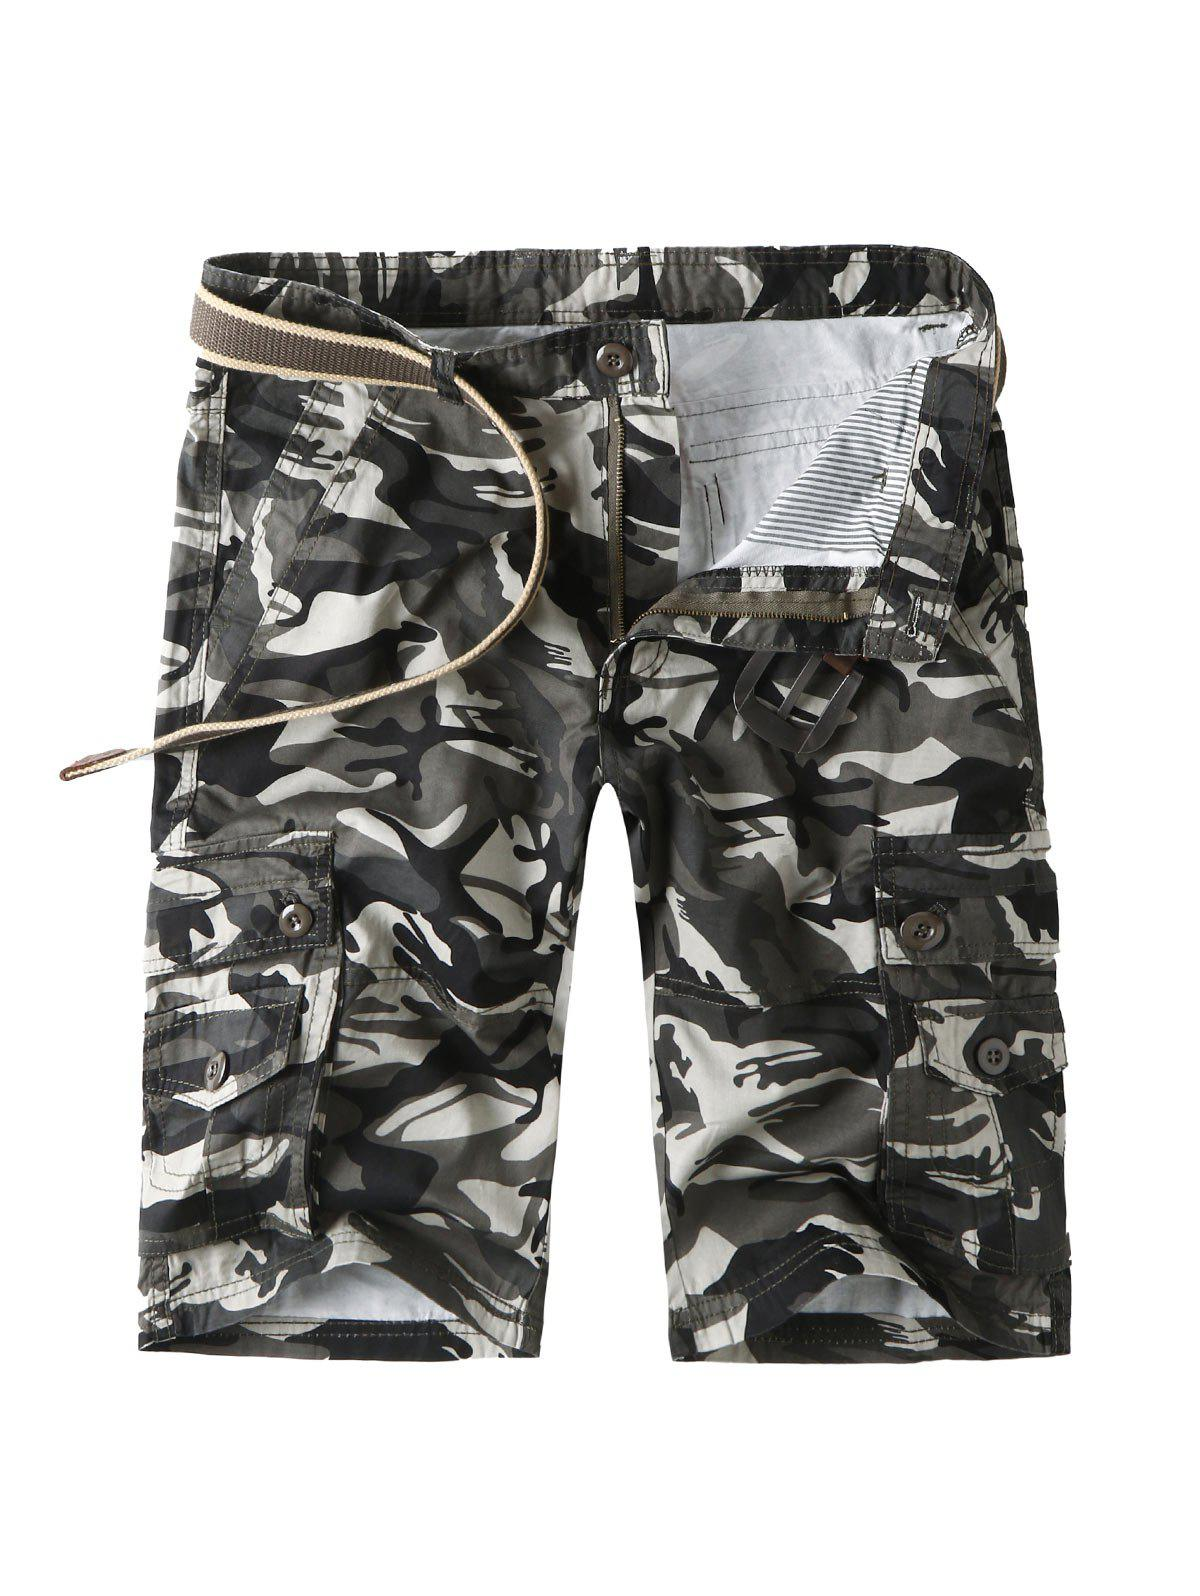 Shops Camouflage Cargo Shorts with Multi Pockets